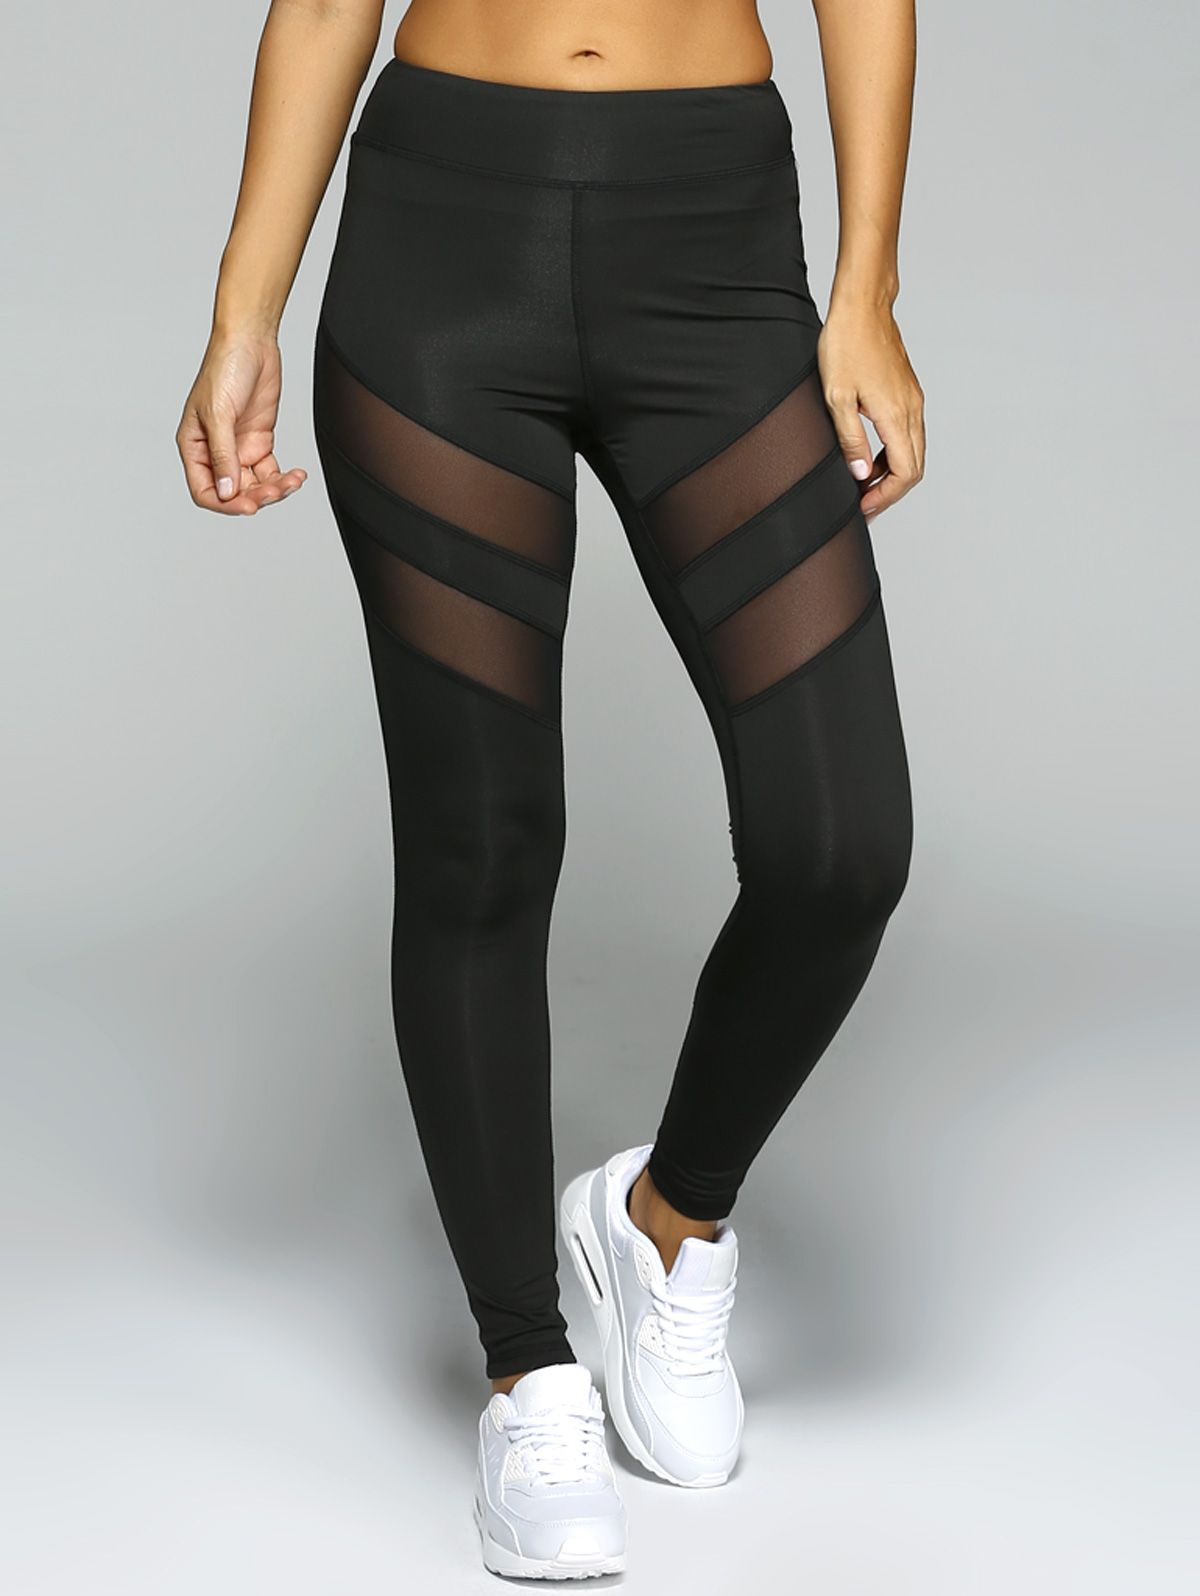 6eef90ea4d See-Through Tight Sport Leggings | Fashion - Fitness | Leggings are ...